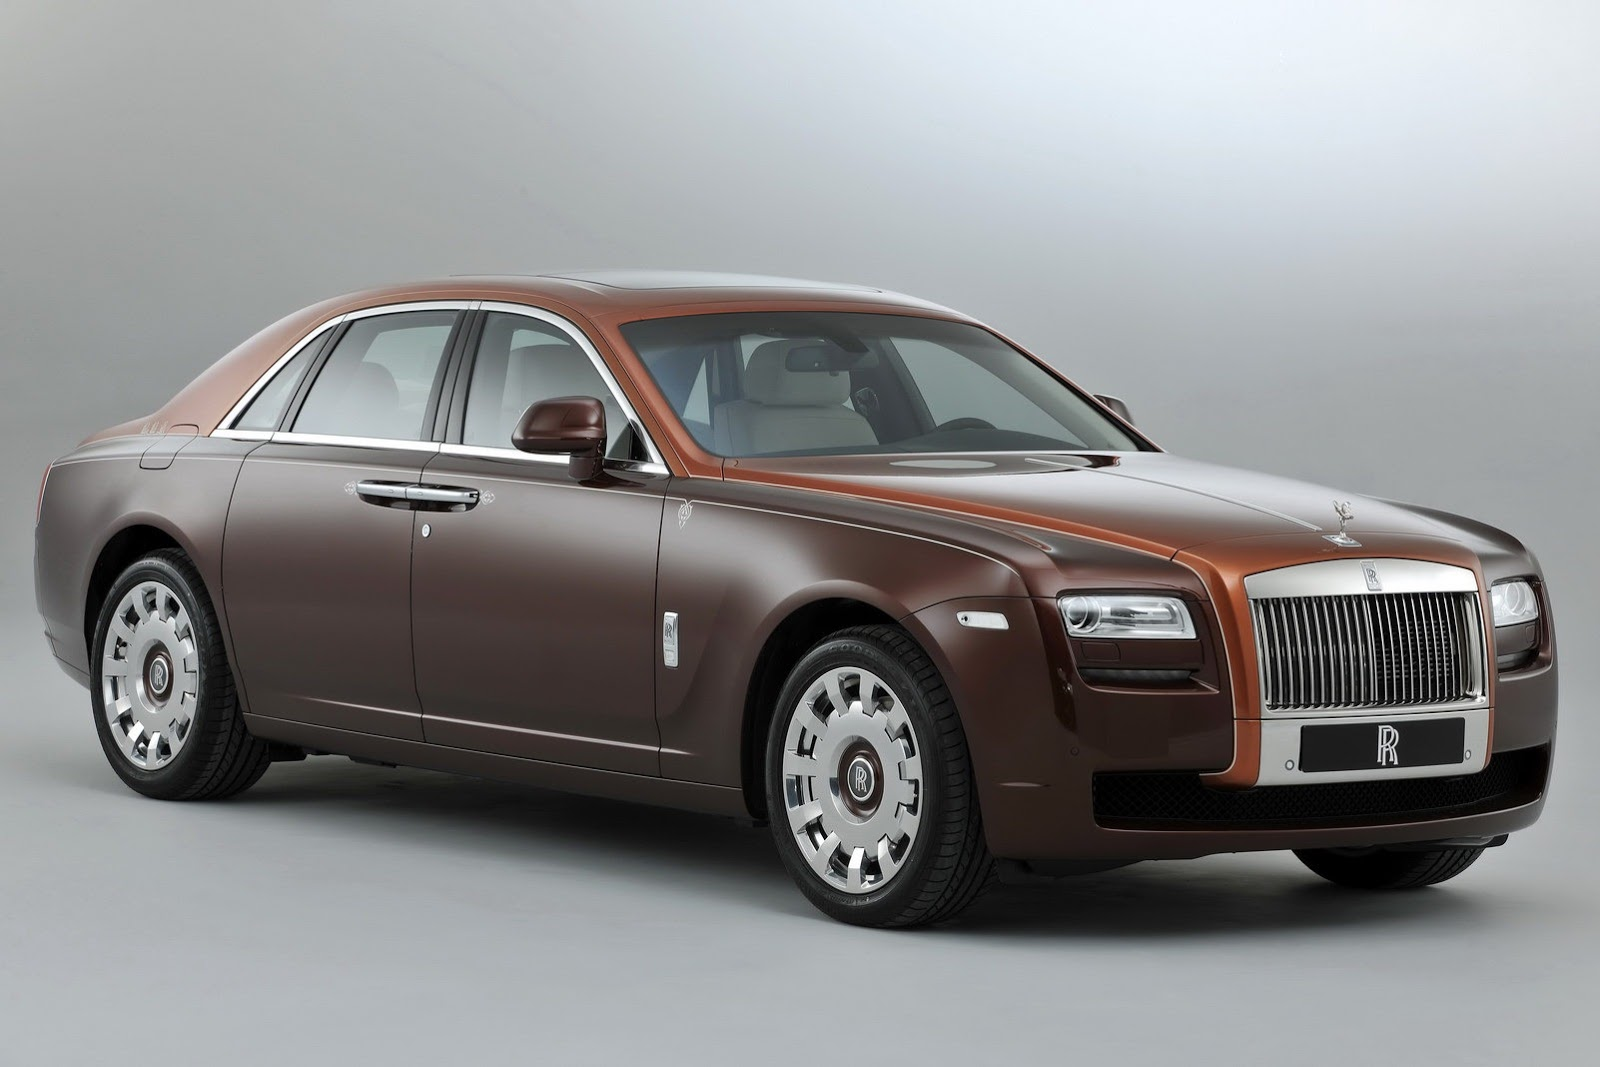 Rolls Royce Ghost wants more Middle Eastern Clients